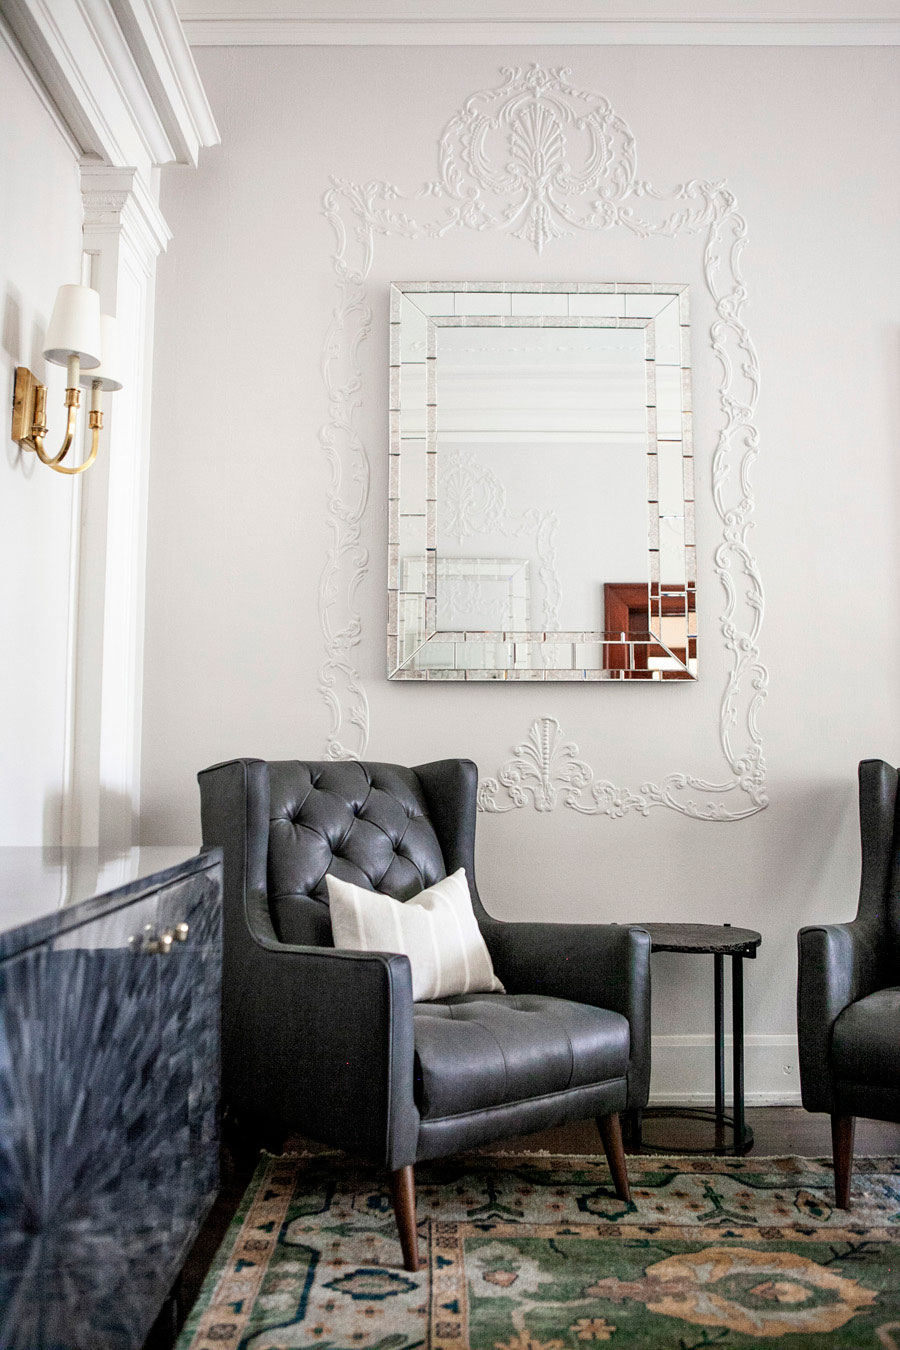 Sitting Area with Black Leather Chair